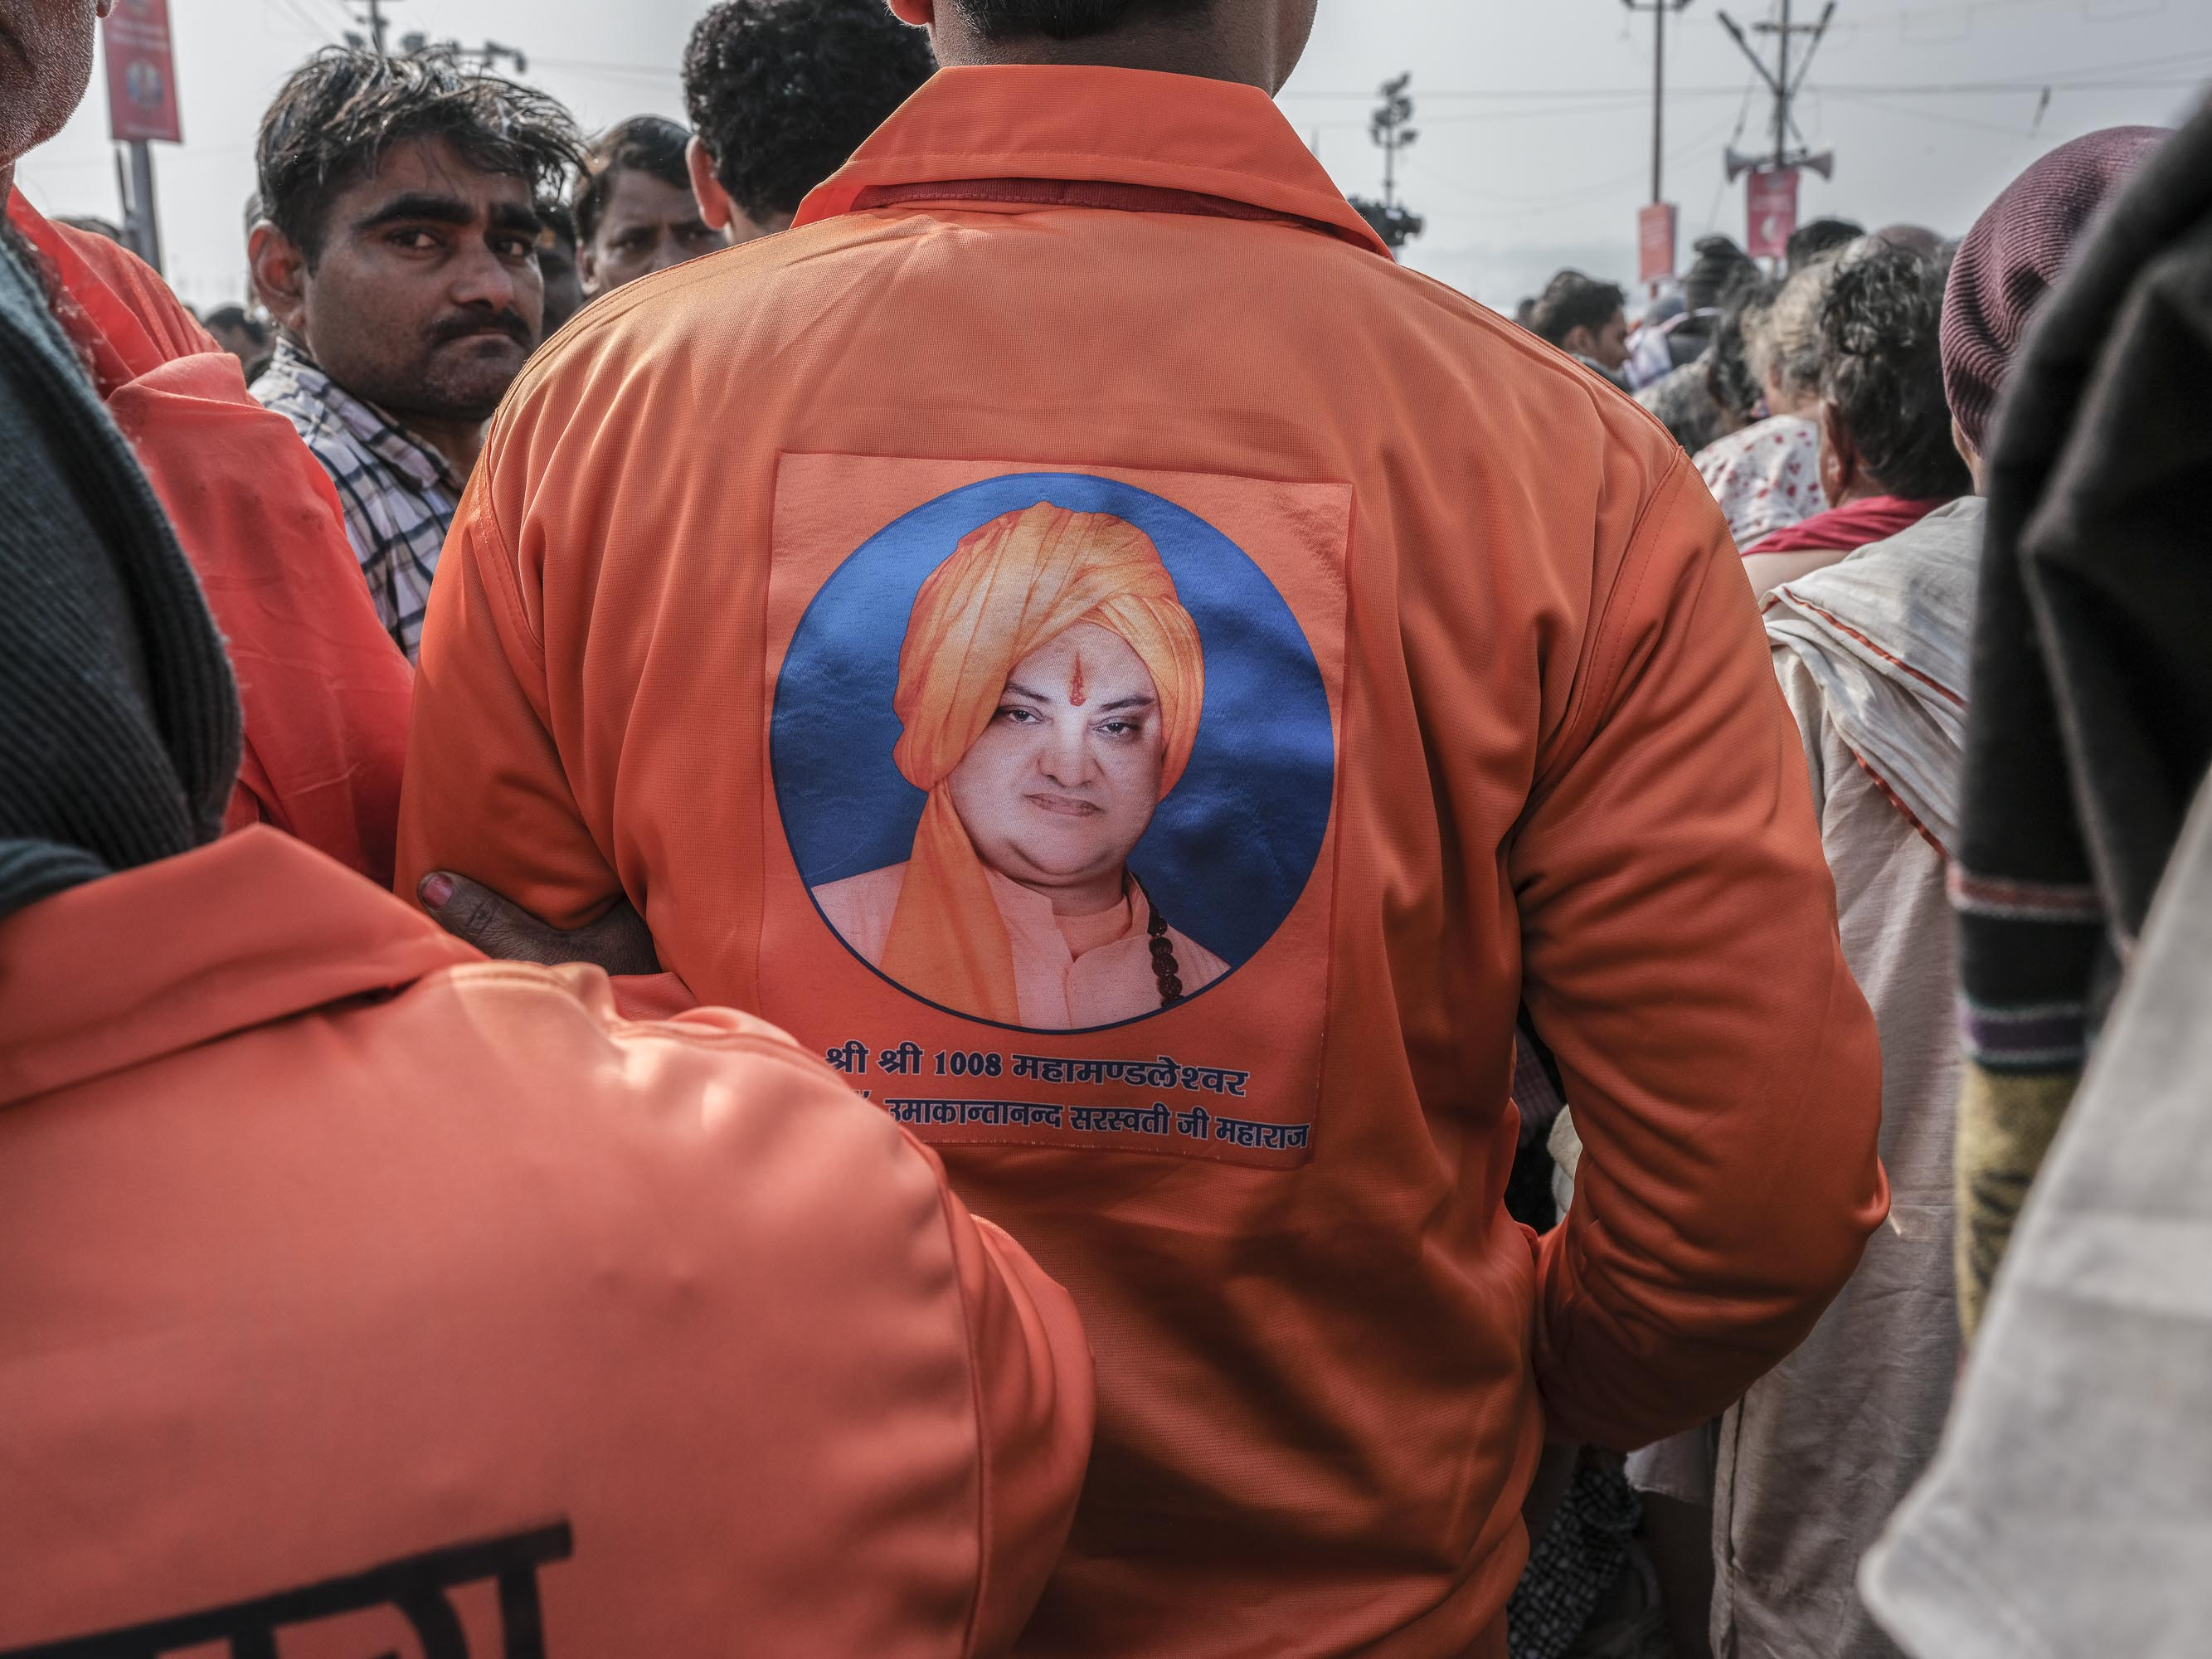 baba supporters crowd 4 February pilgrims Kumbh mela 2019 India Allahabad Prayagraj Ardh hindu religious Festival event rivers photographer jose jeuland photography